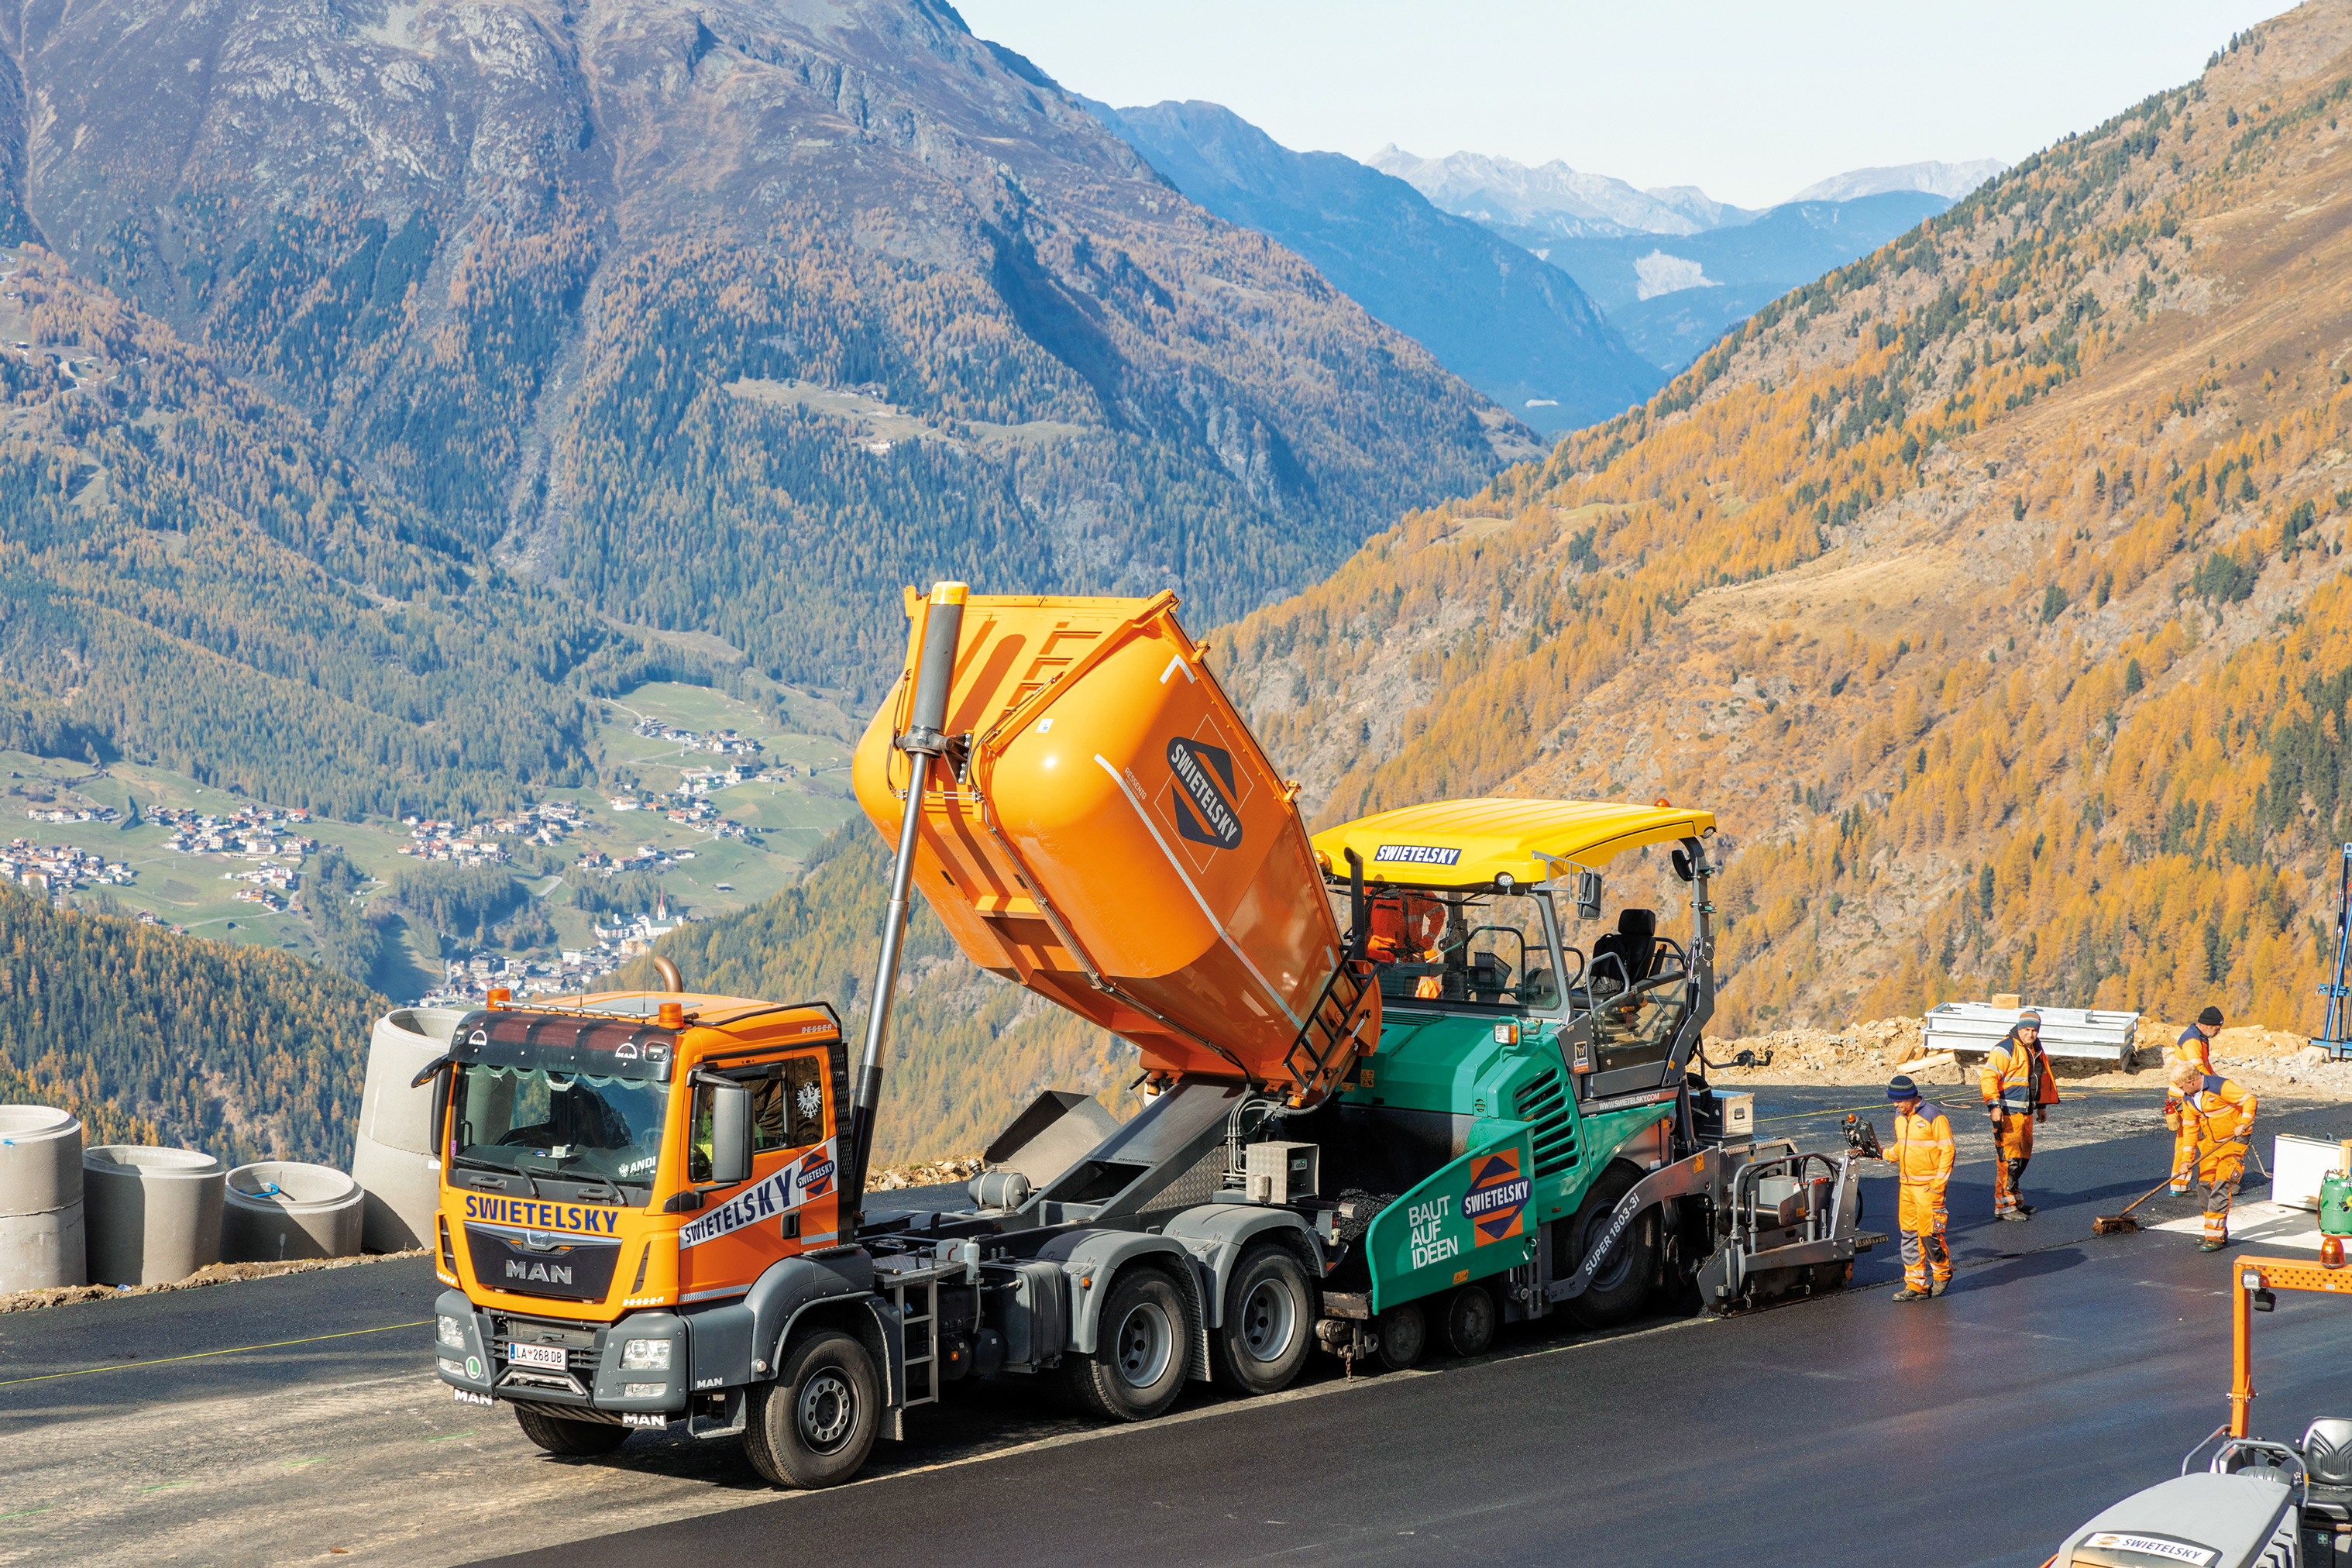 Flugplatz, Heliport Hochgurgl - Road and bridge construction